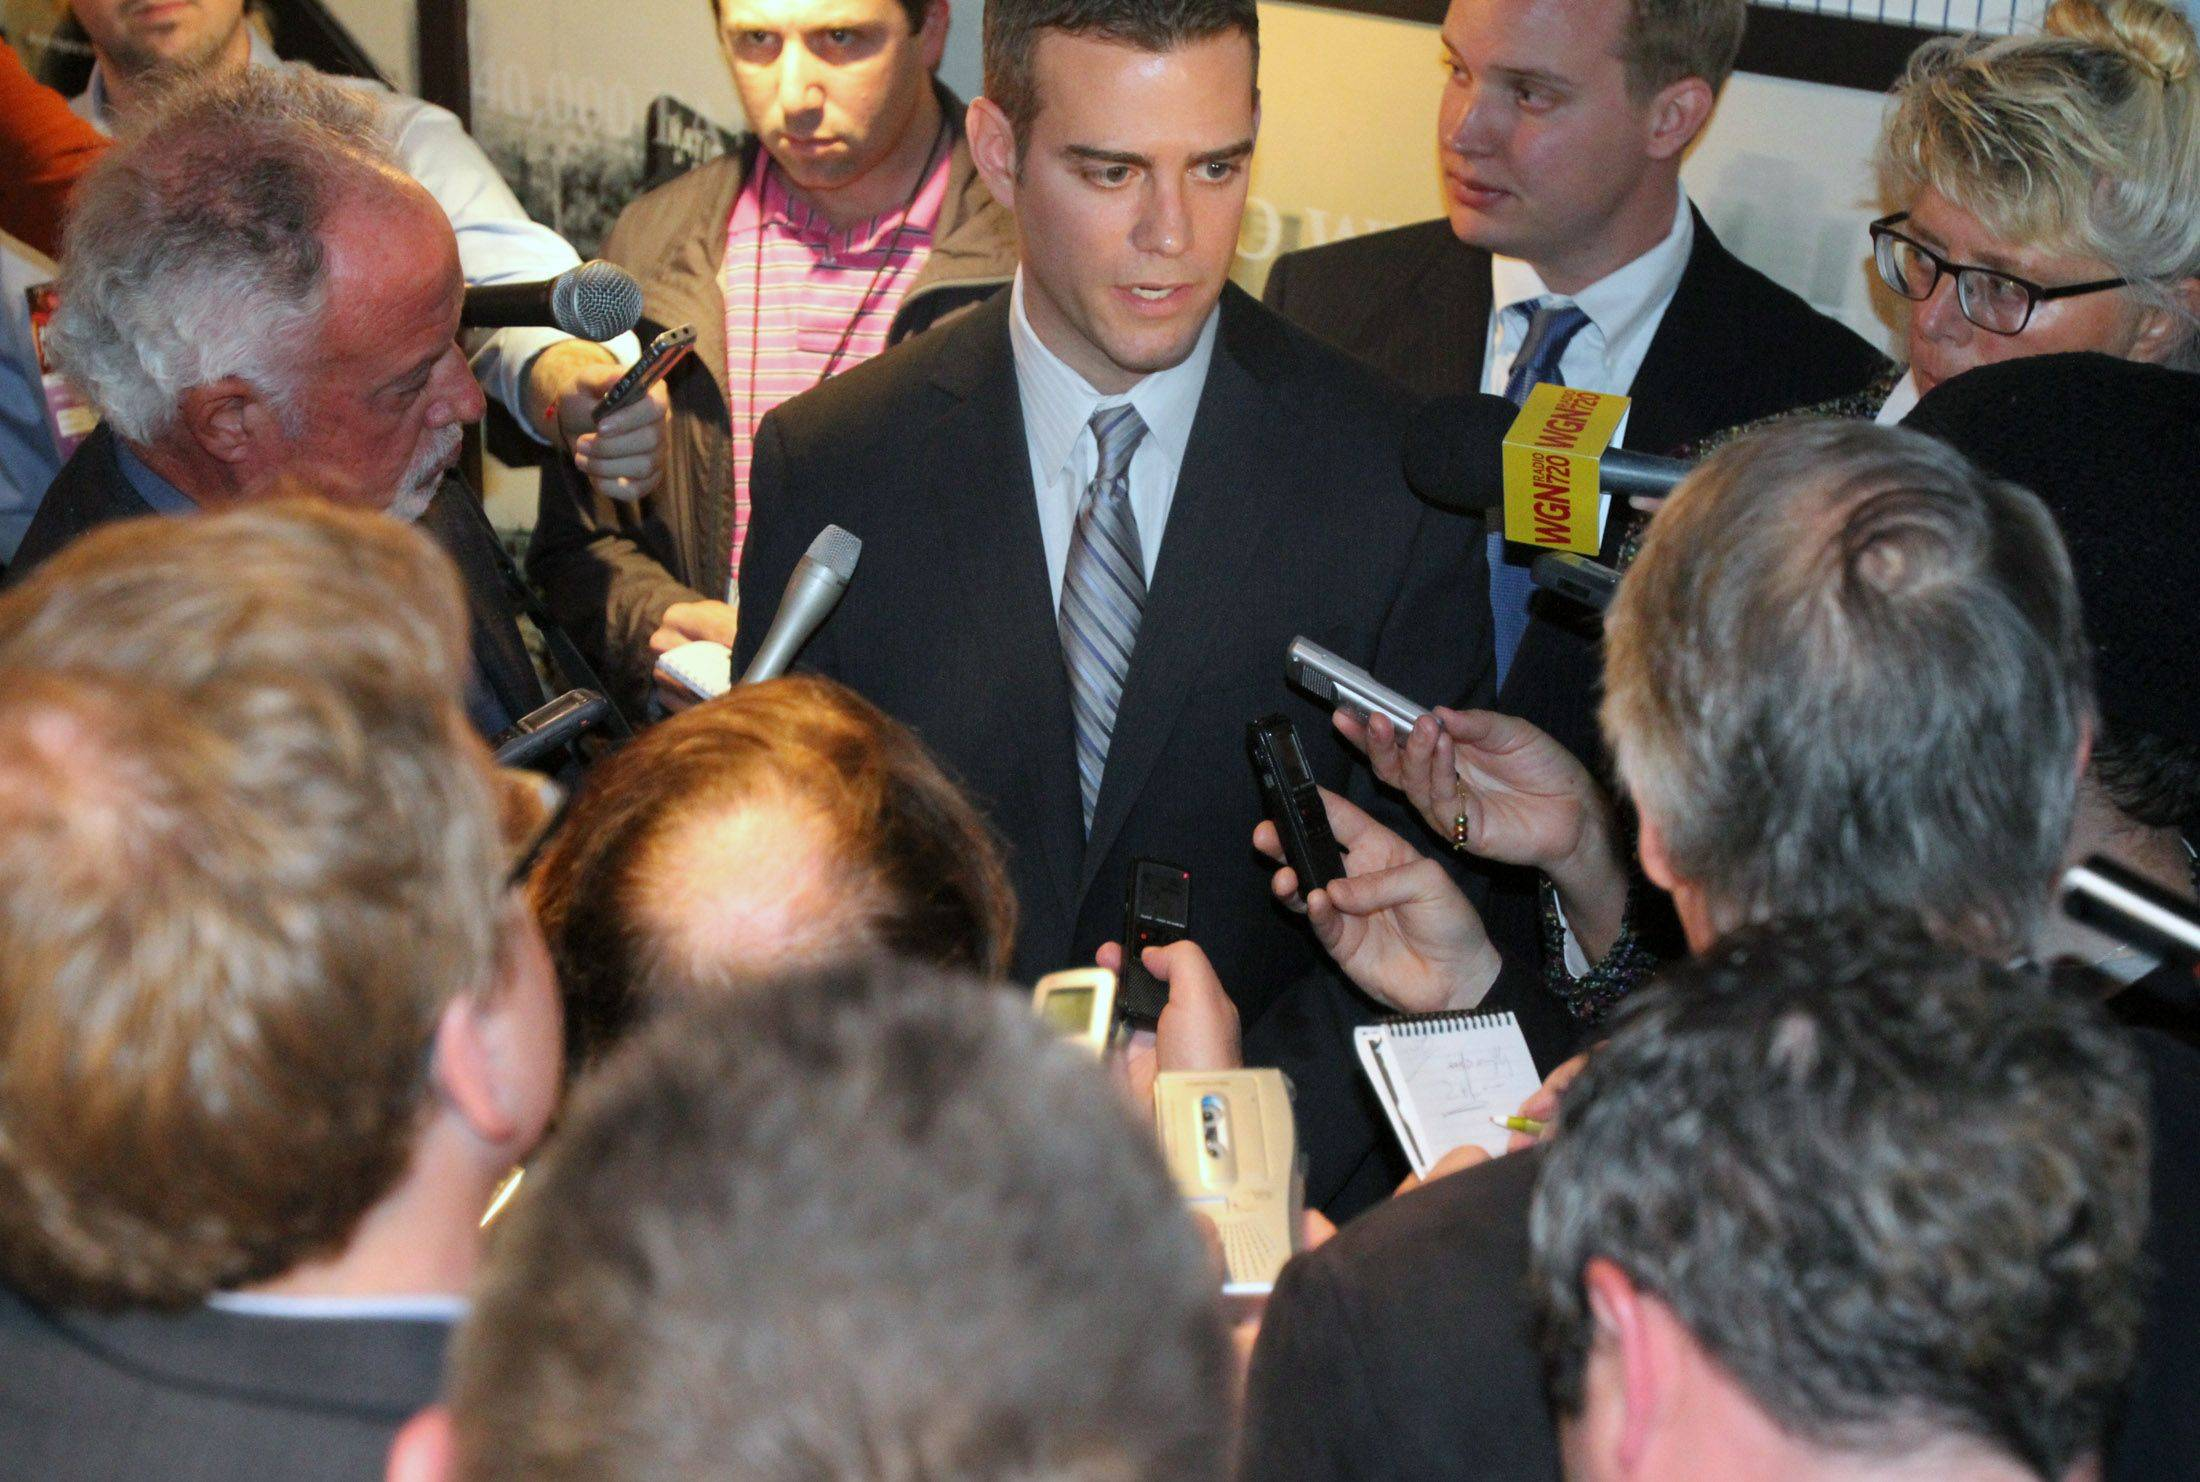 Theo Epstein, Chicago Cubs president of baseball operations, talks to the press in pockets after the press conference at Wrigley Field in Chicago on Tuesday.